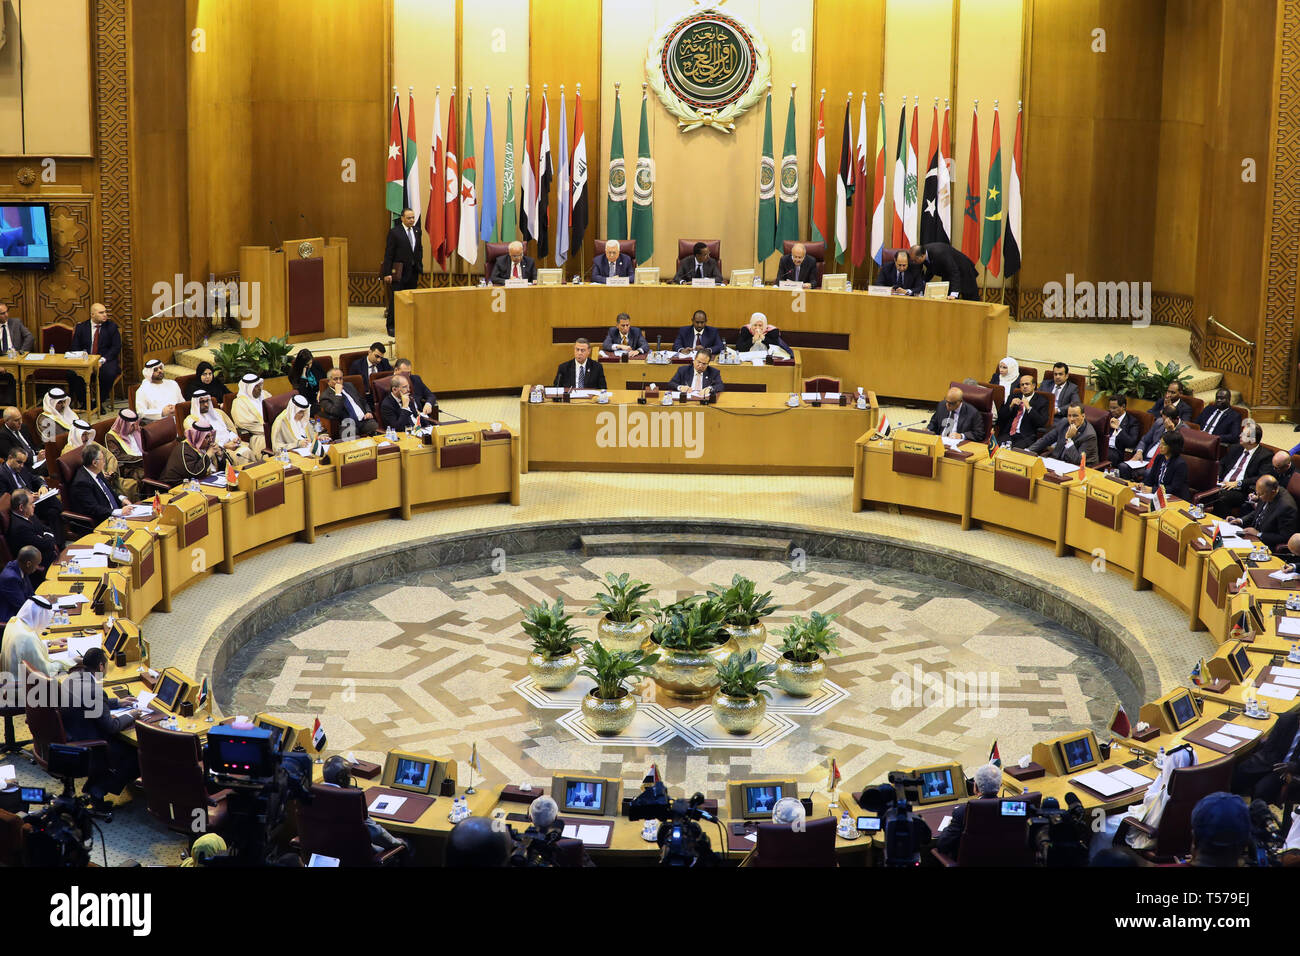 Cairo, Egypt. 21st Apr, 2019. Representatives attend an emergency meeting of Arab foreign ministers at the Arab League headquarters in Cairo, Egypt, April 21, 2019. Arab foreign ministers said on Sunday that their states will not accept any deal related to the Palestinian cause that does not conform with the international references. Credit: Ahmed Gomaa/Xinhua/Alamy Live News - Stock Image